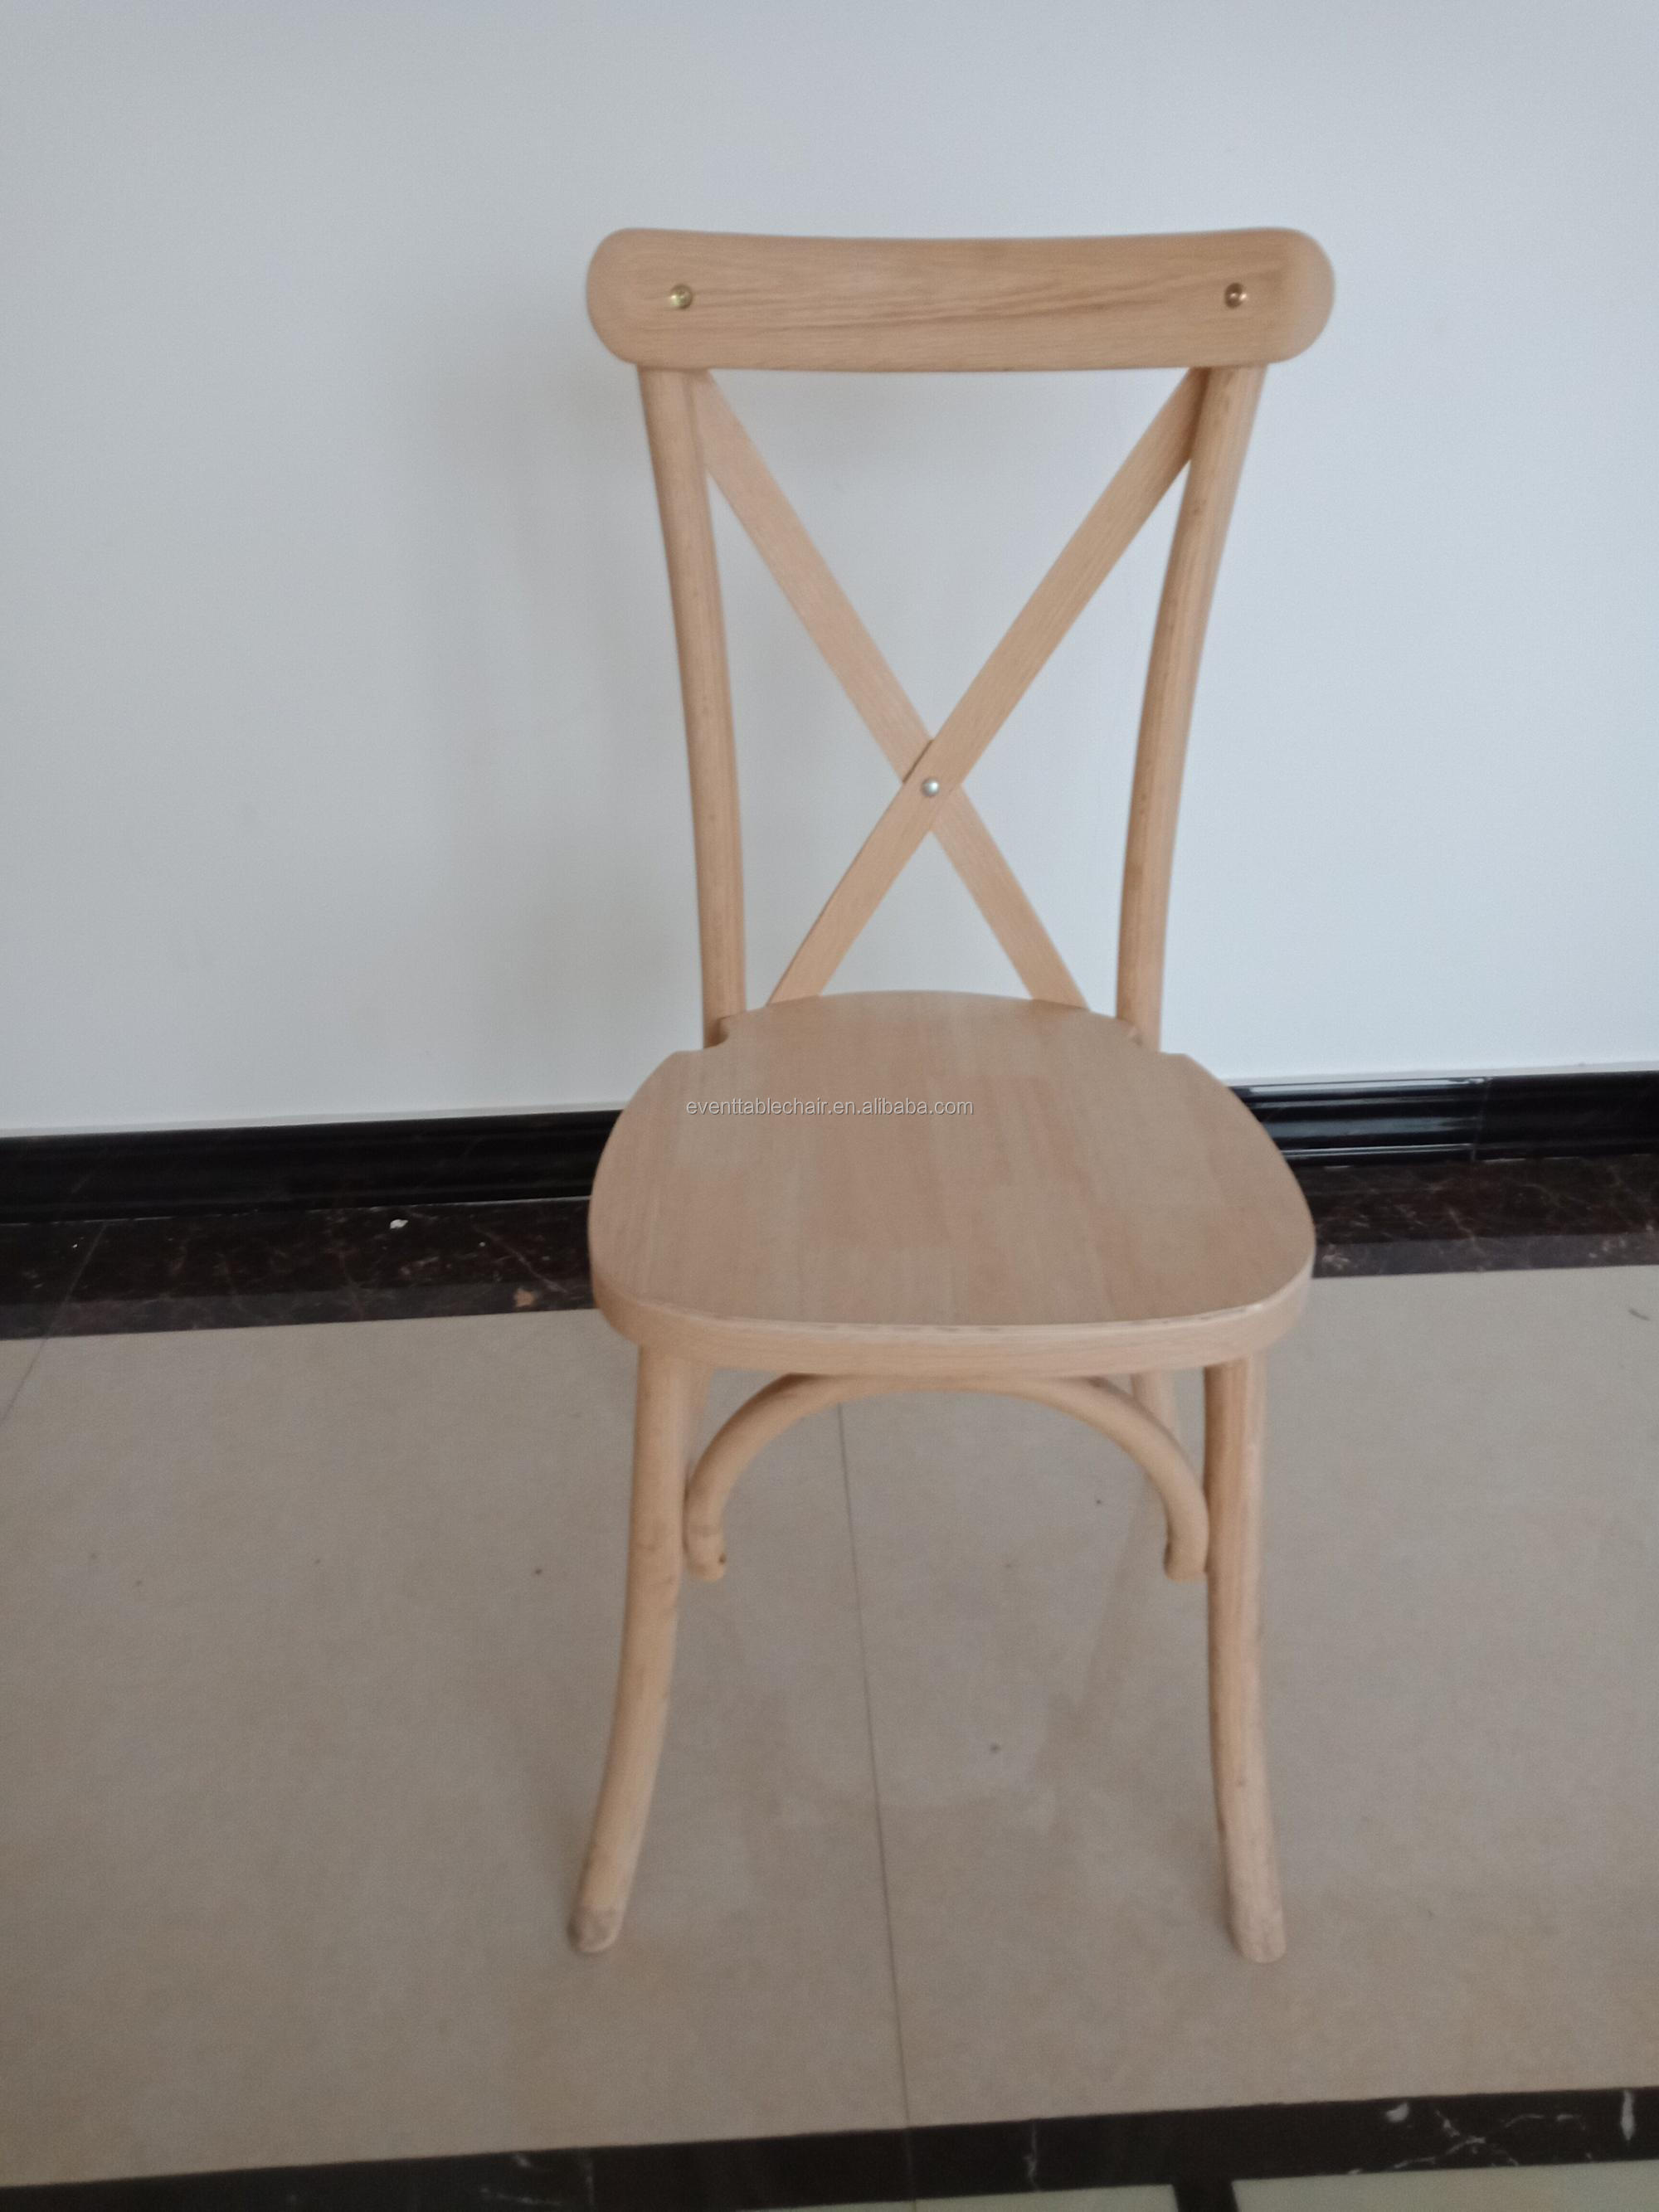 smaller X chair (2).jpg